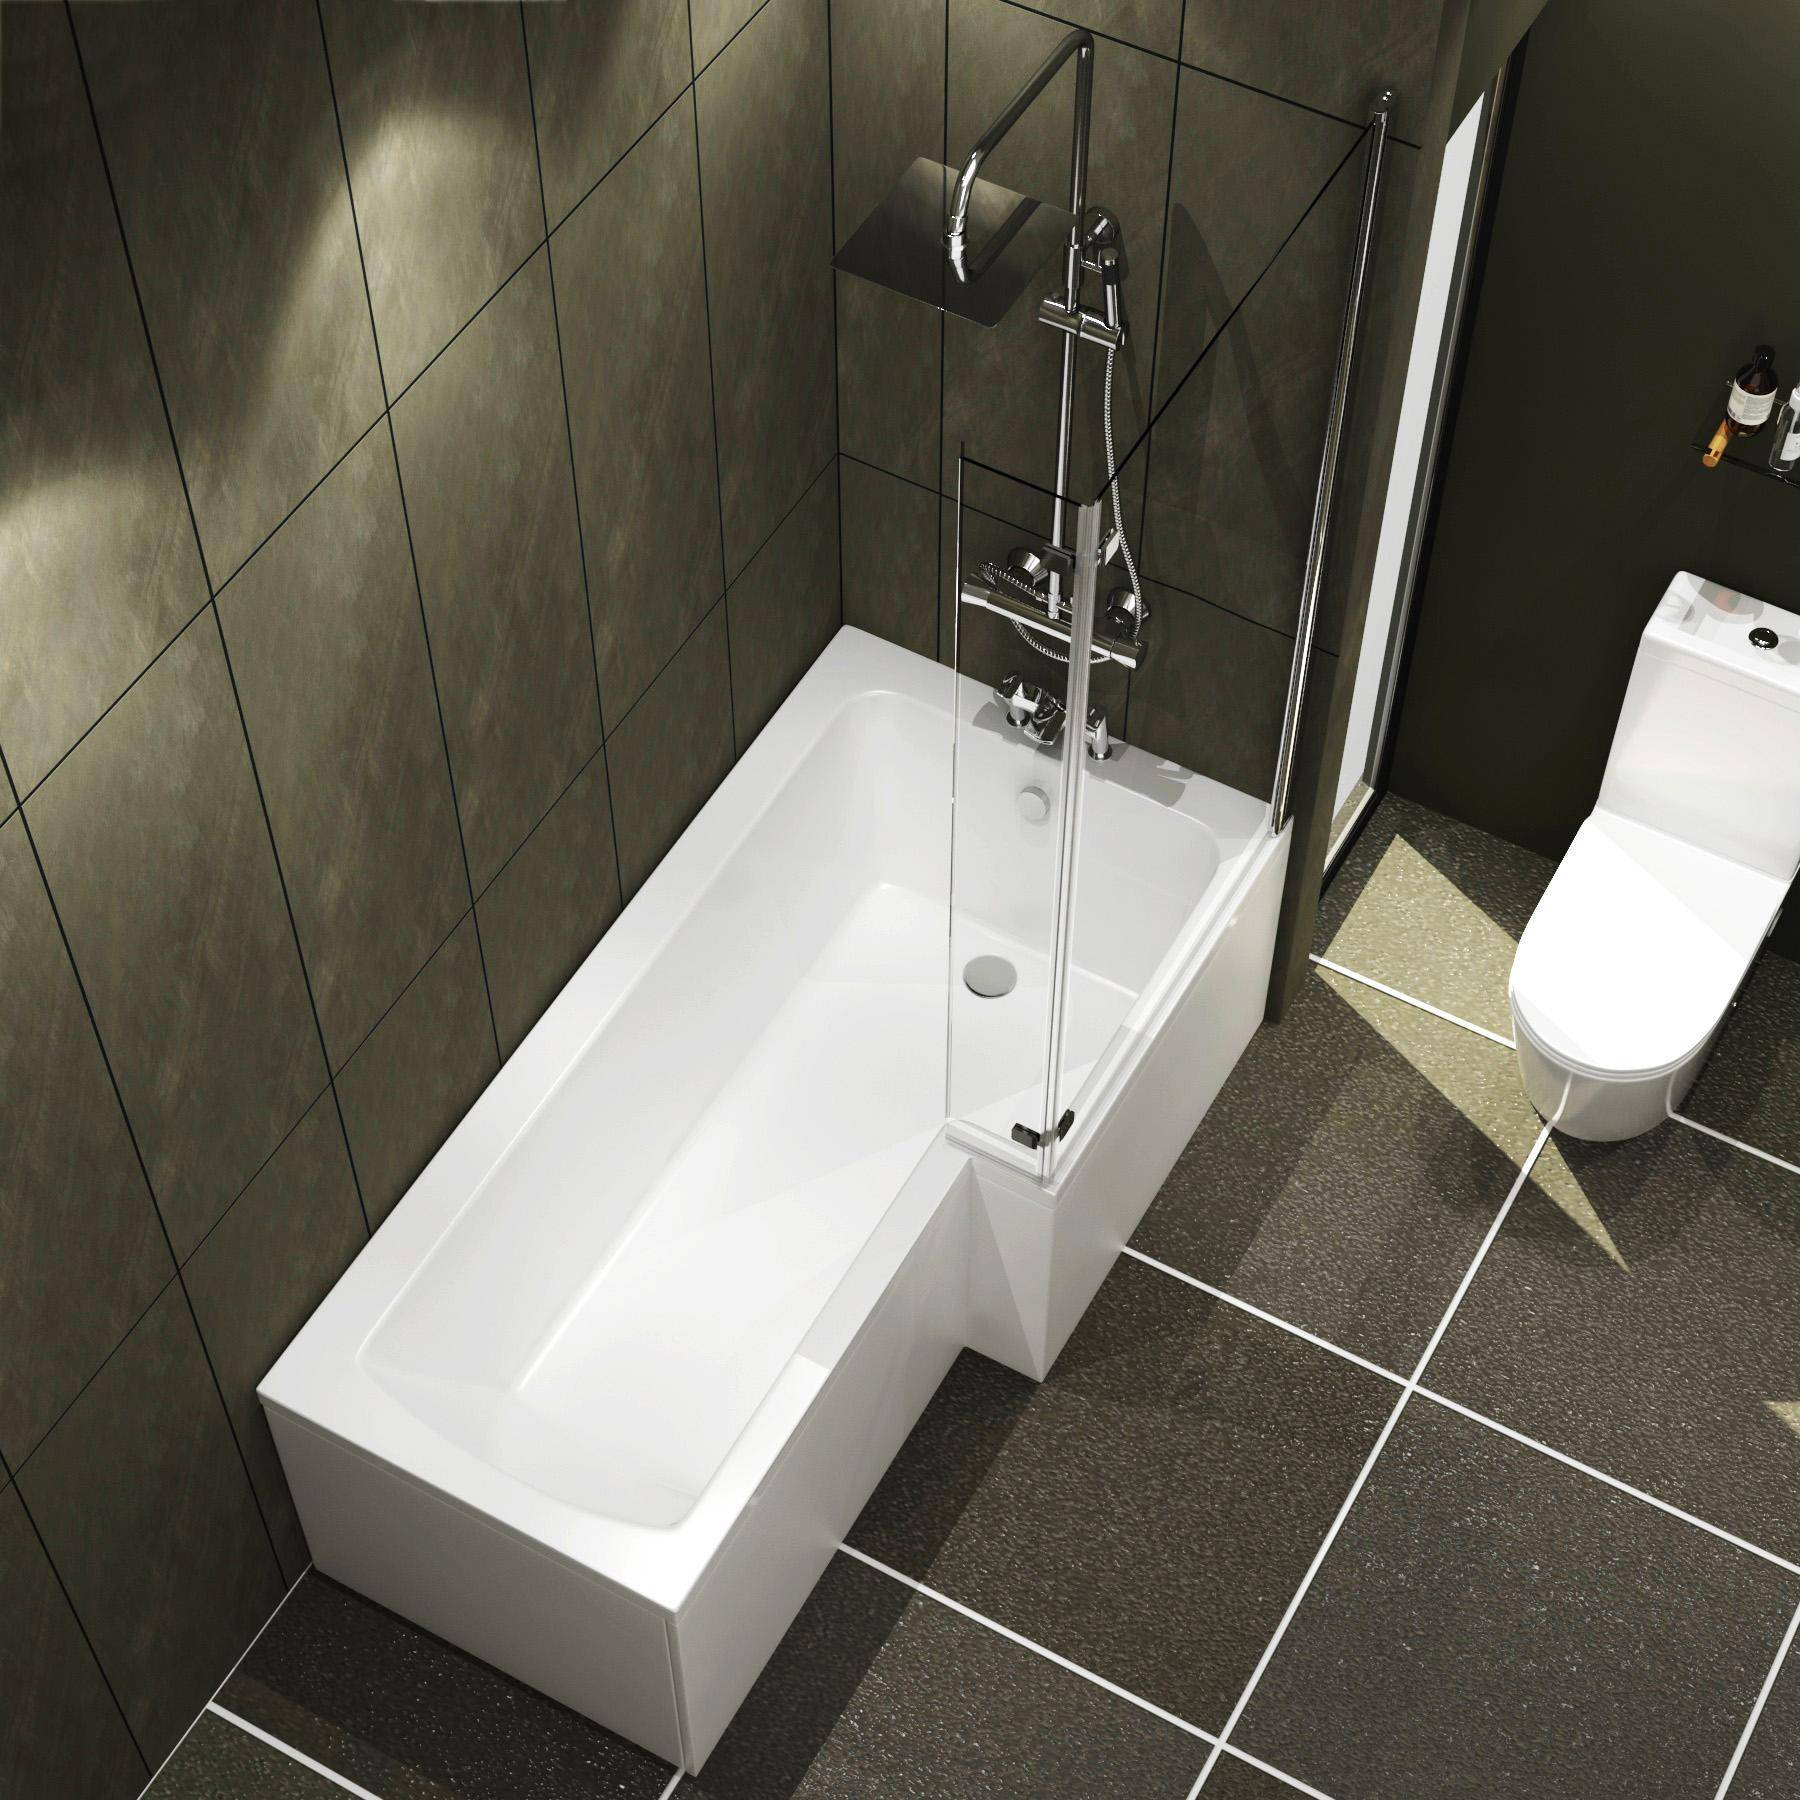 Royal Bathrooms Qubix 1500 x 850mm Right Hand L Shaped Shower Bath tub with Hinged Screen with Flipper End Panel & Front Panel